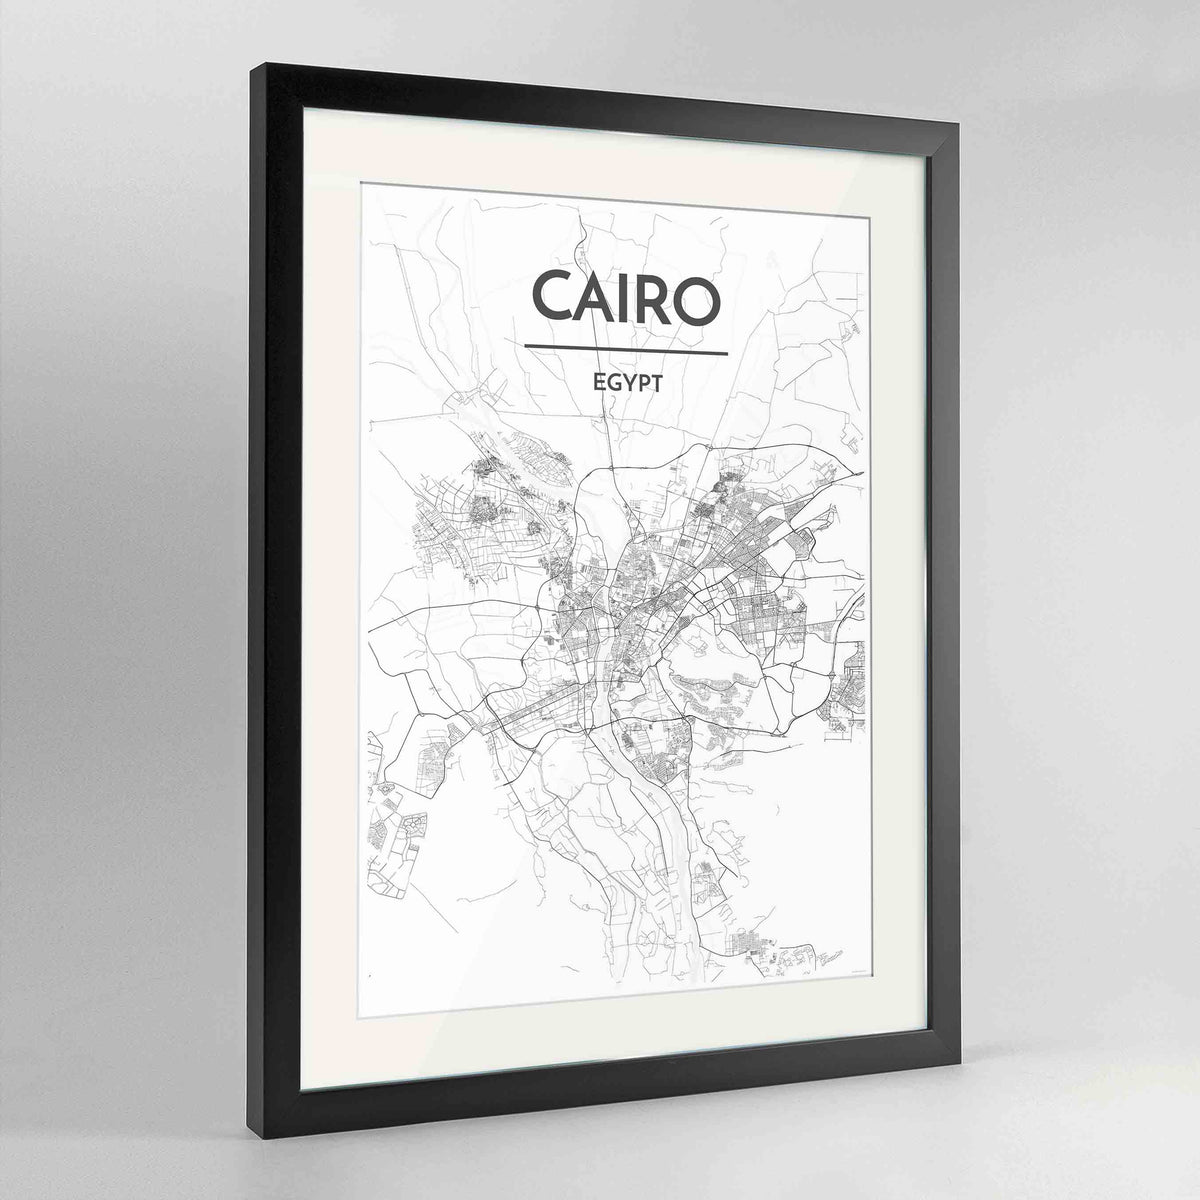 "Framed Cairo Map Art Print 24x36"" Contemporary Black frame Point Two Design Group"